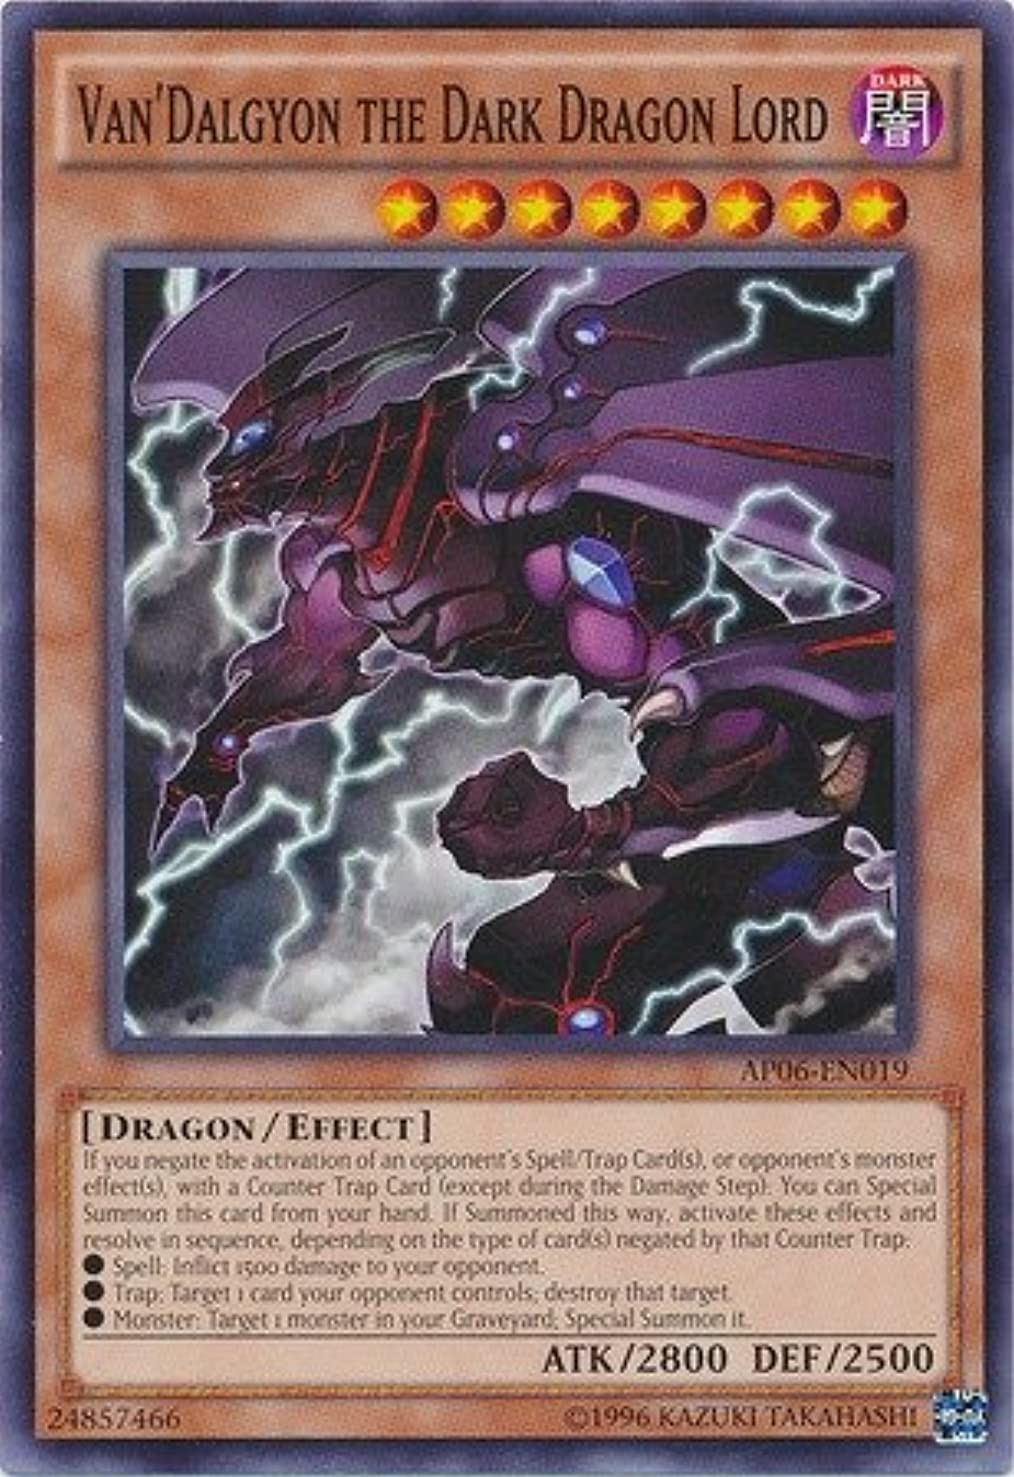 Yu-Gi-Oh! Van39;Dalgyon the Dark Dragon Lord (AP06-EN019) - Astral Pack: Booster Six - Unlimited Edition - Common